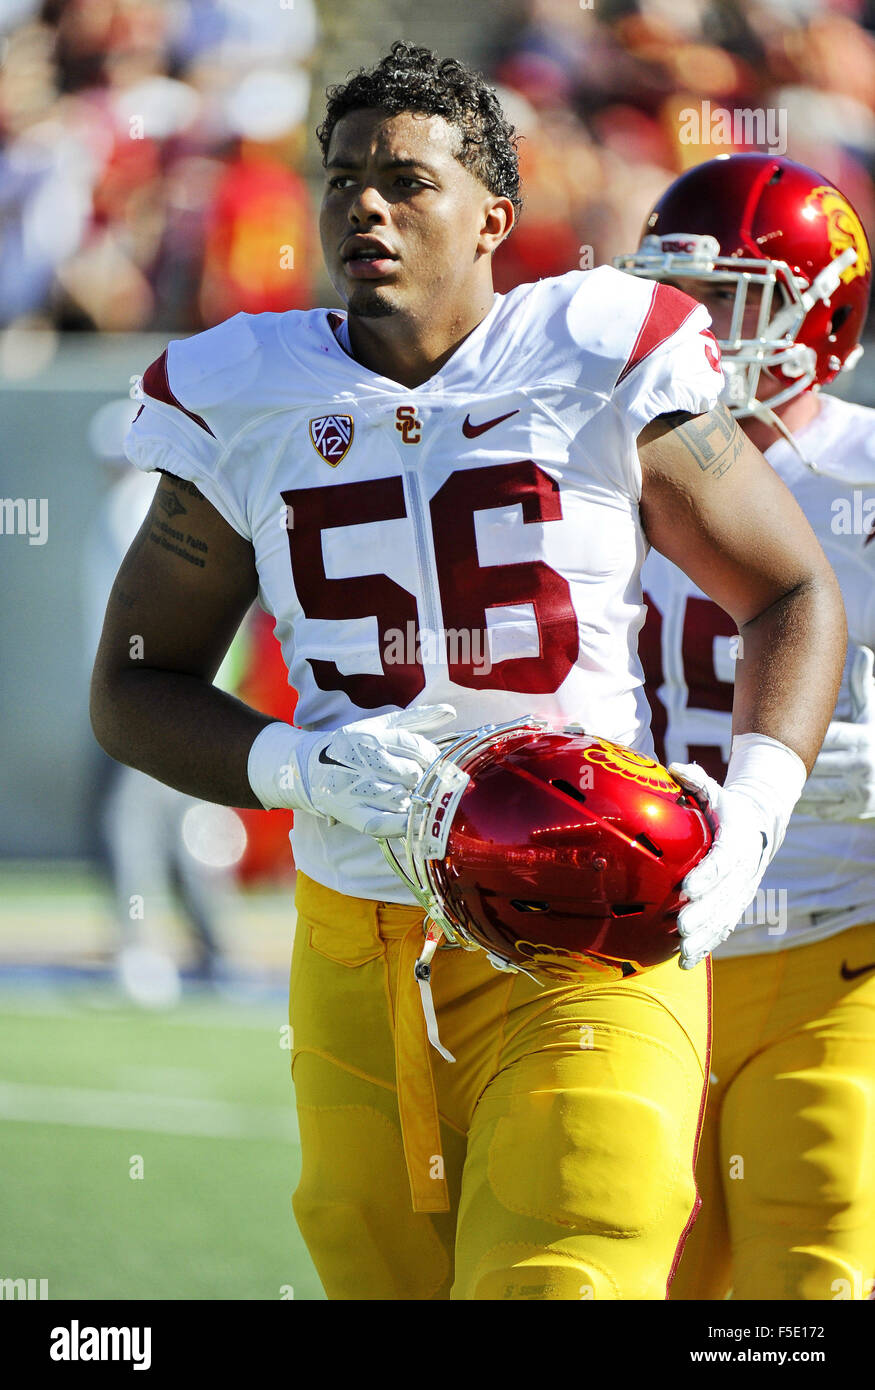 info for 9b6a1 213dd October 31, 2015  Jordan Austin of the USC Trojans in action during a 27-21  victory over the Cal Bears at Kabam Field at California Memorial Stadium in  ...